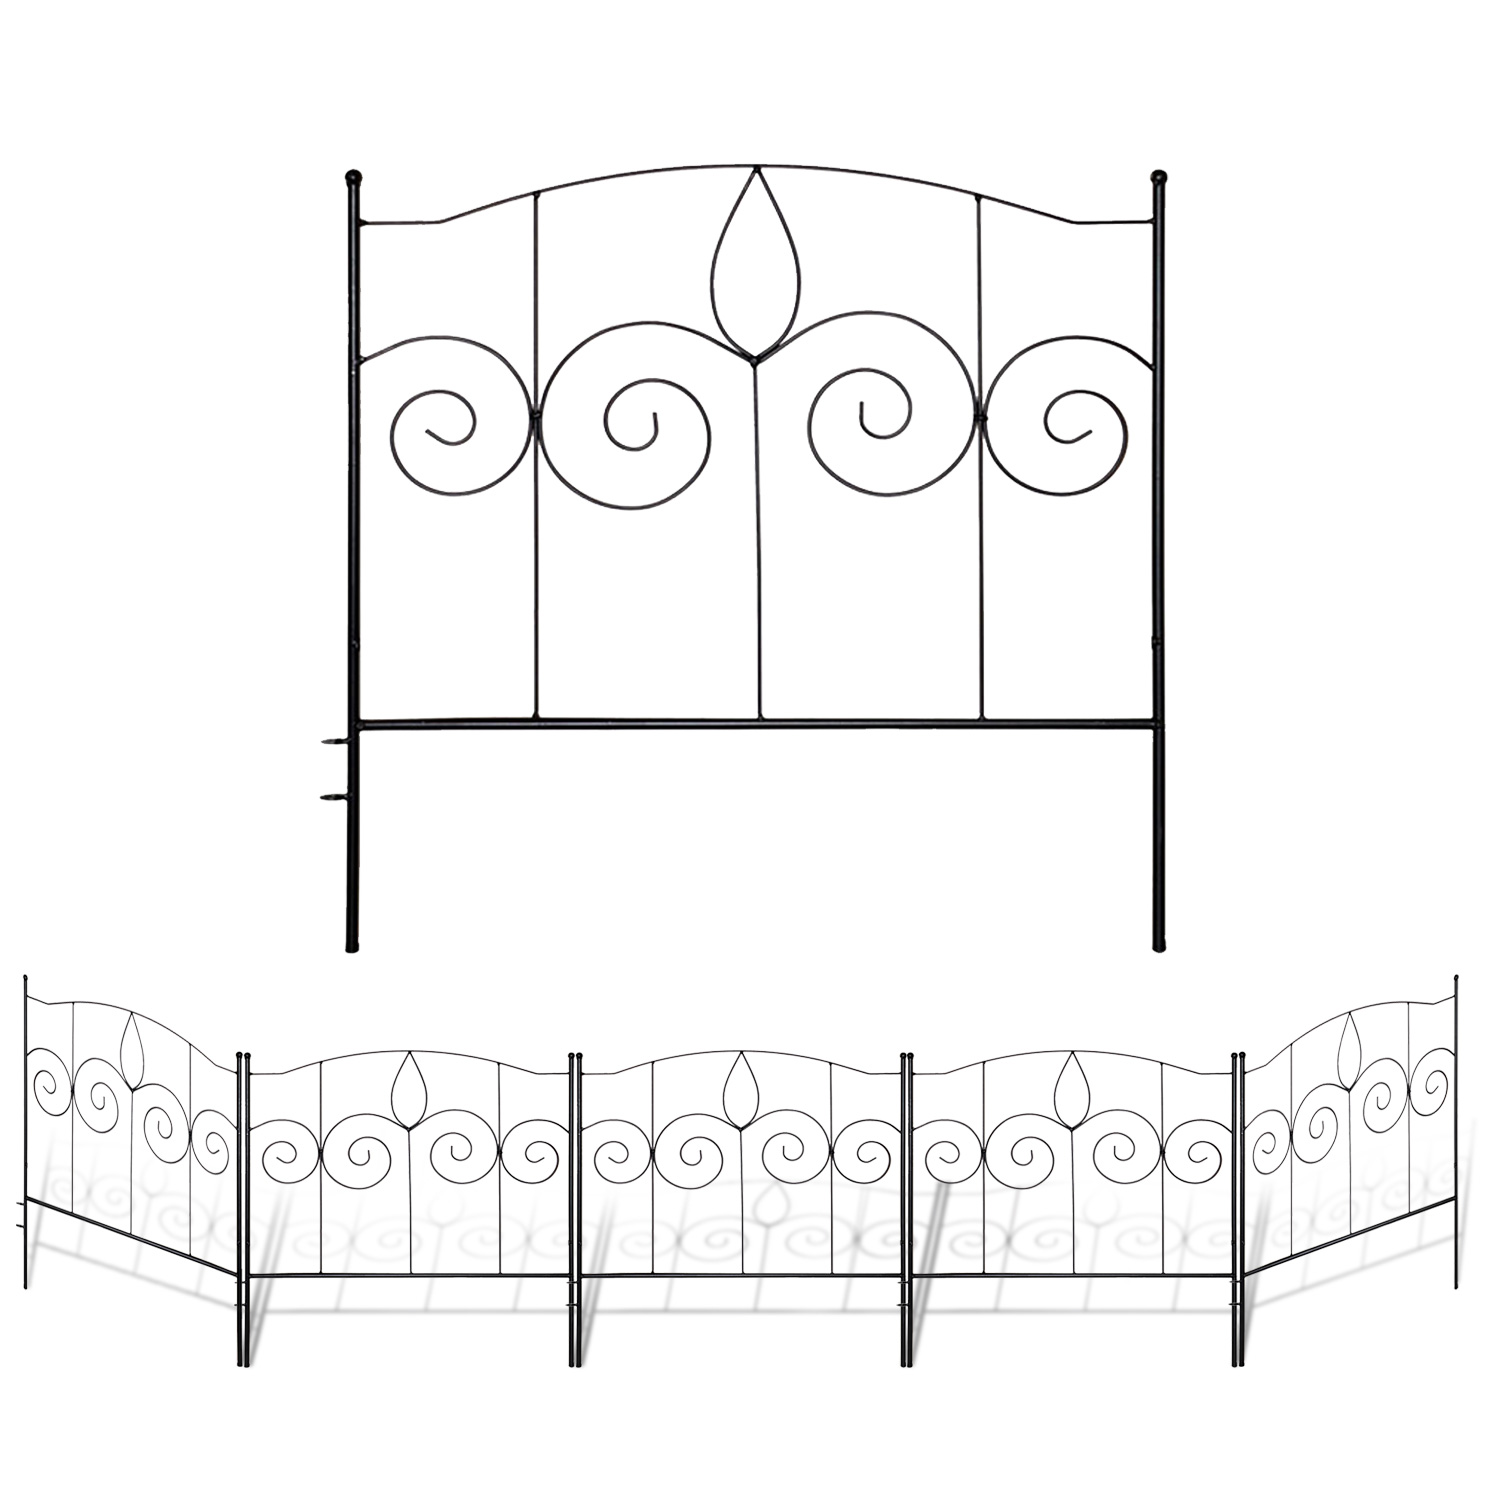 Pack of 5 Totally 10 ft Decorative Wire Fencing Garden Border Edging Garden Fence Animal Barrier MTB Decorative Garden Border Fence Panel 32 in x 24 in